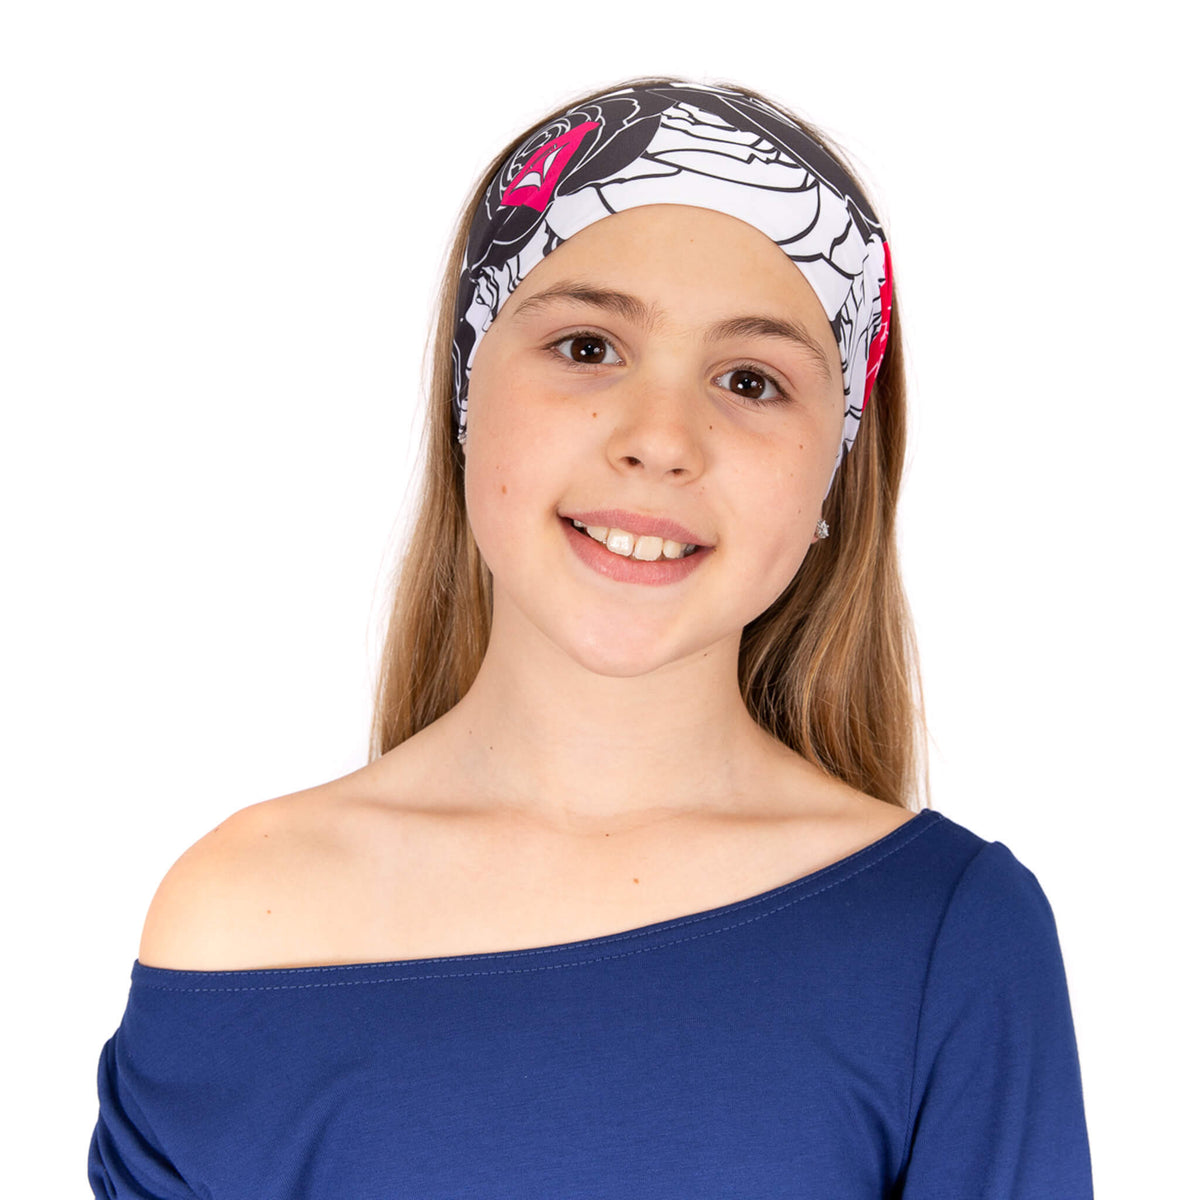 Crossed headband for children